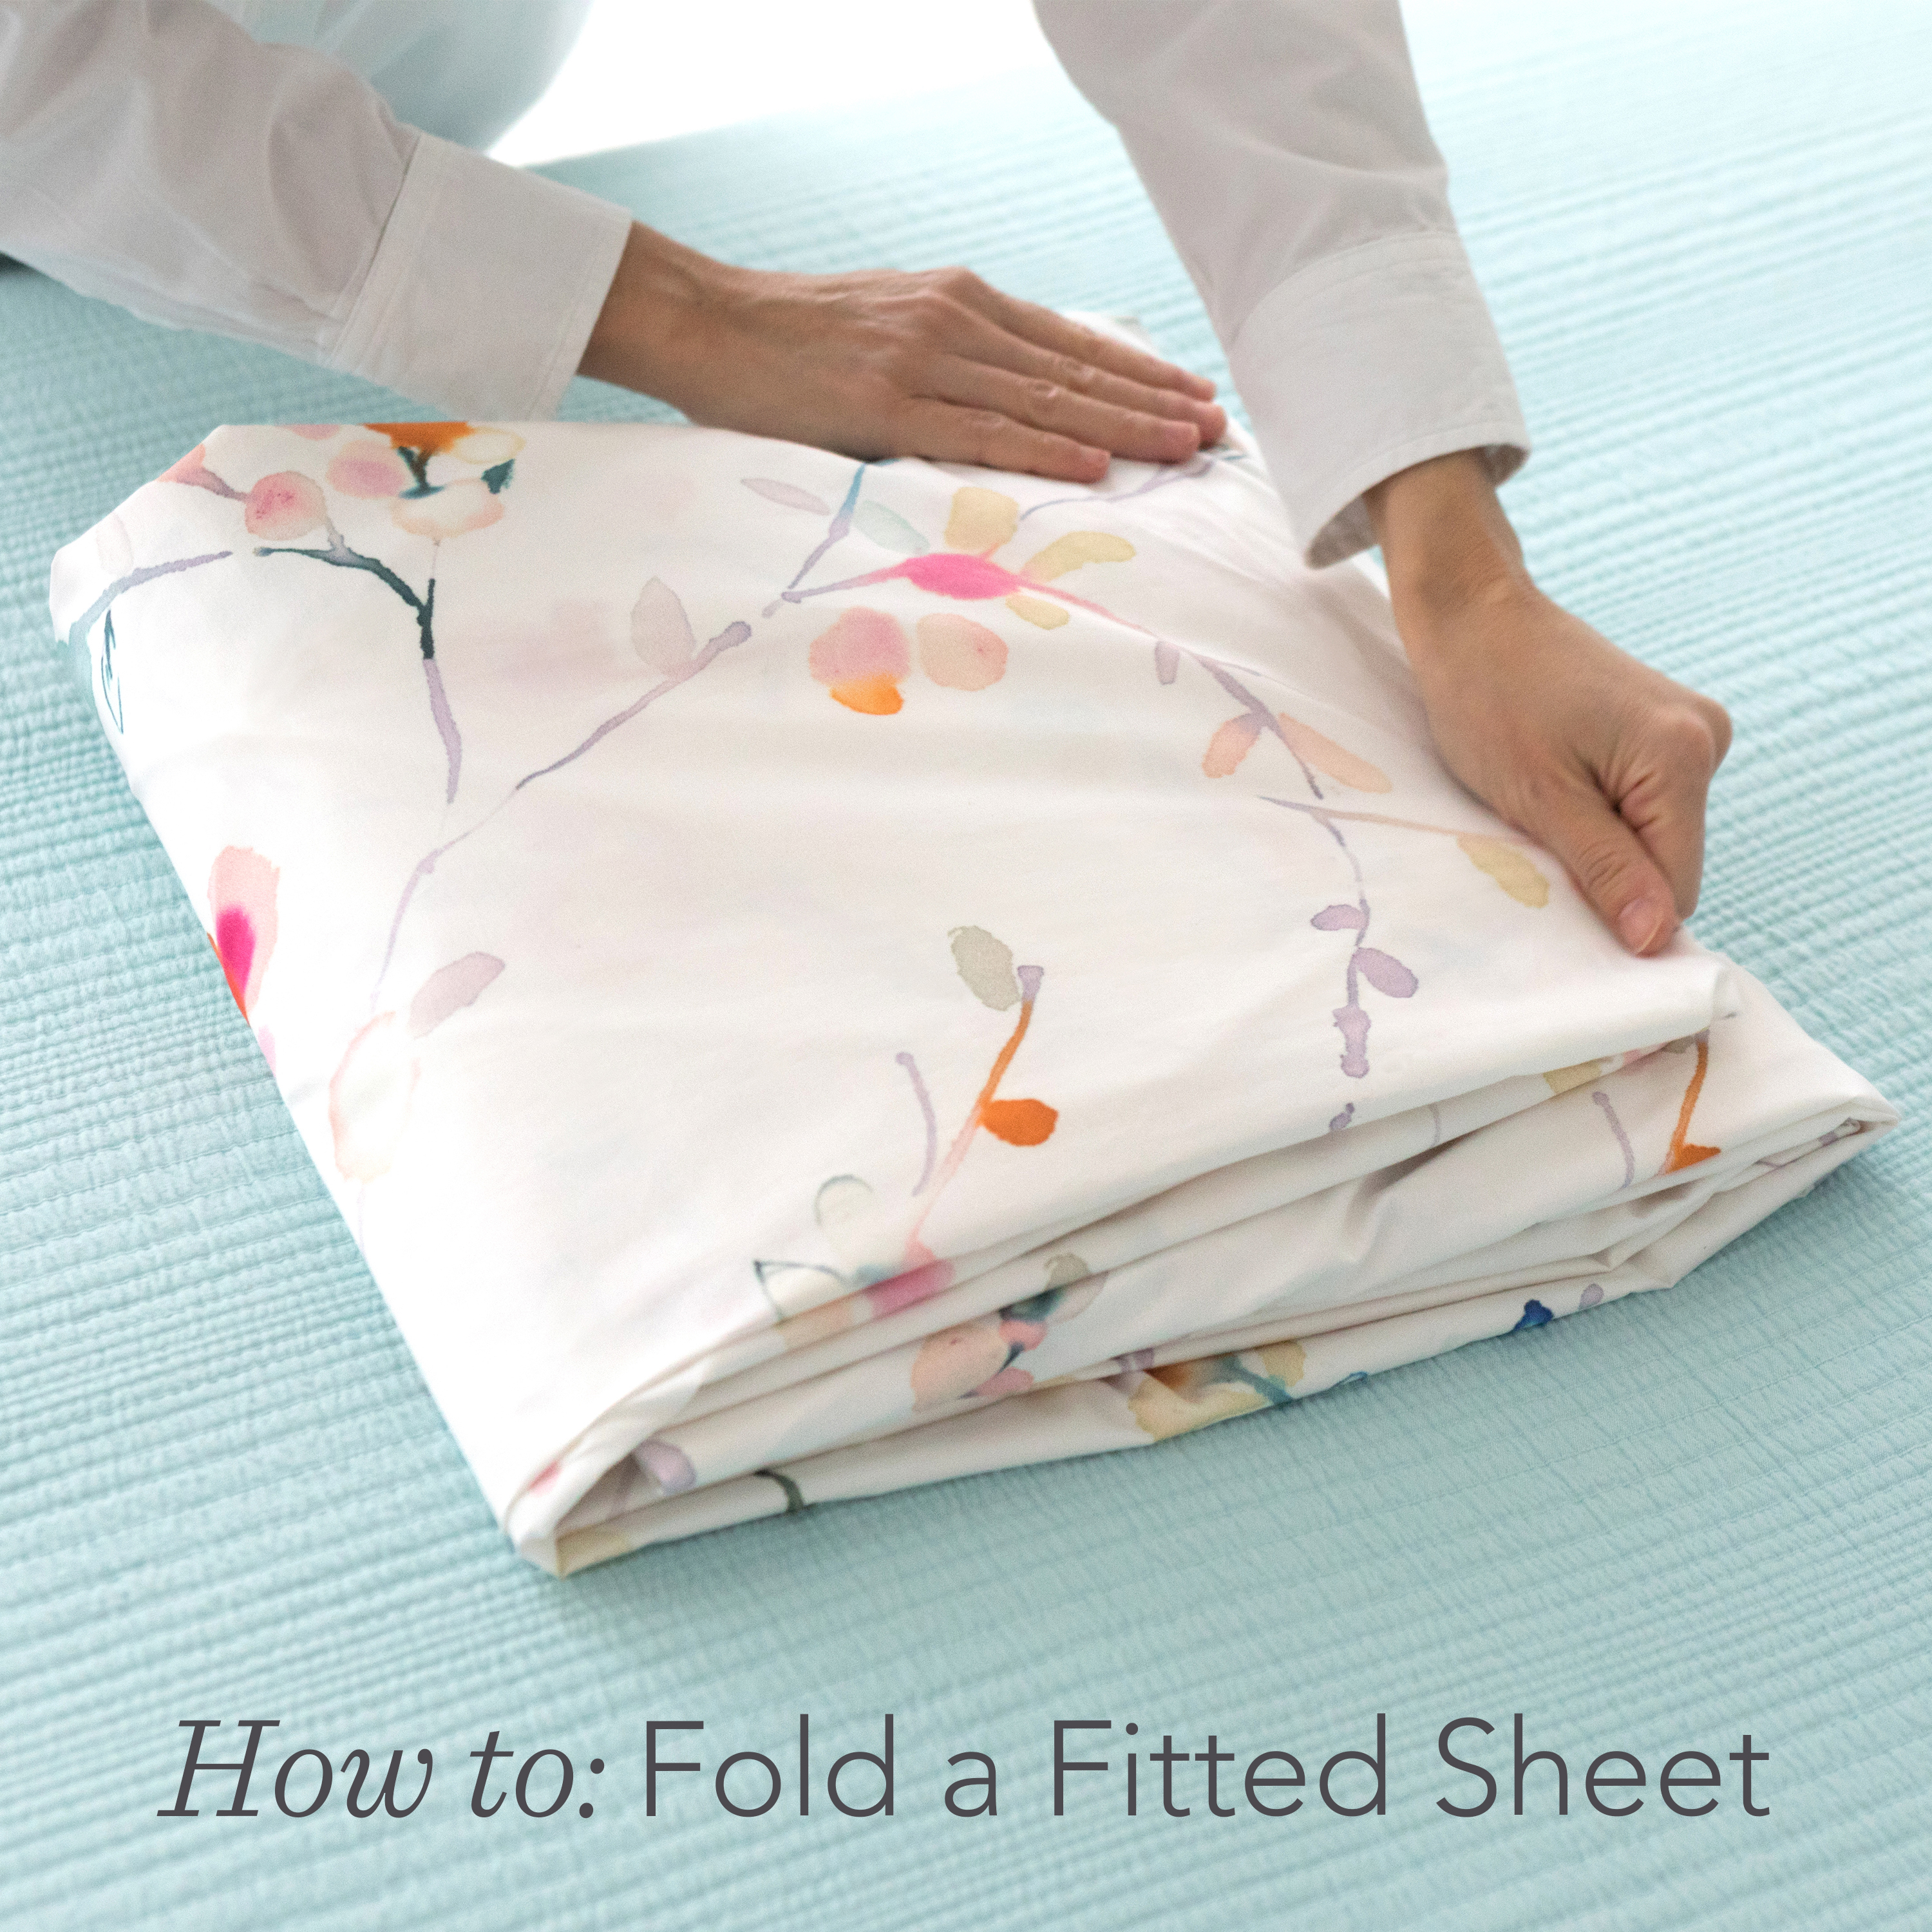 101 how to fold your fitted sheets - How To Fold Fitted Sheets